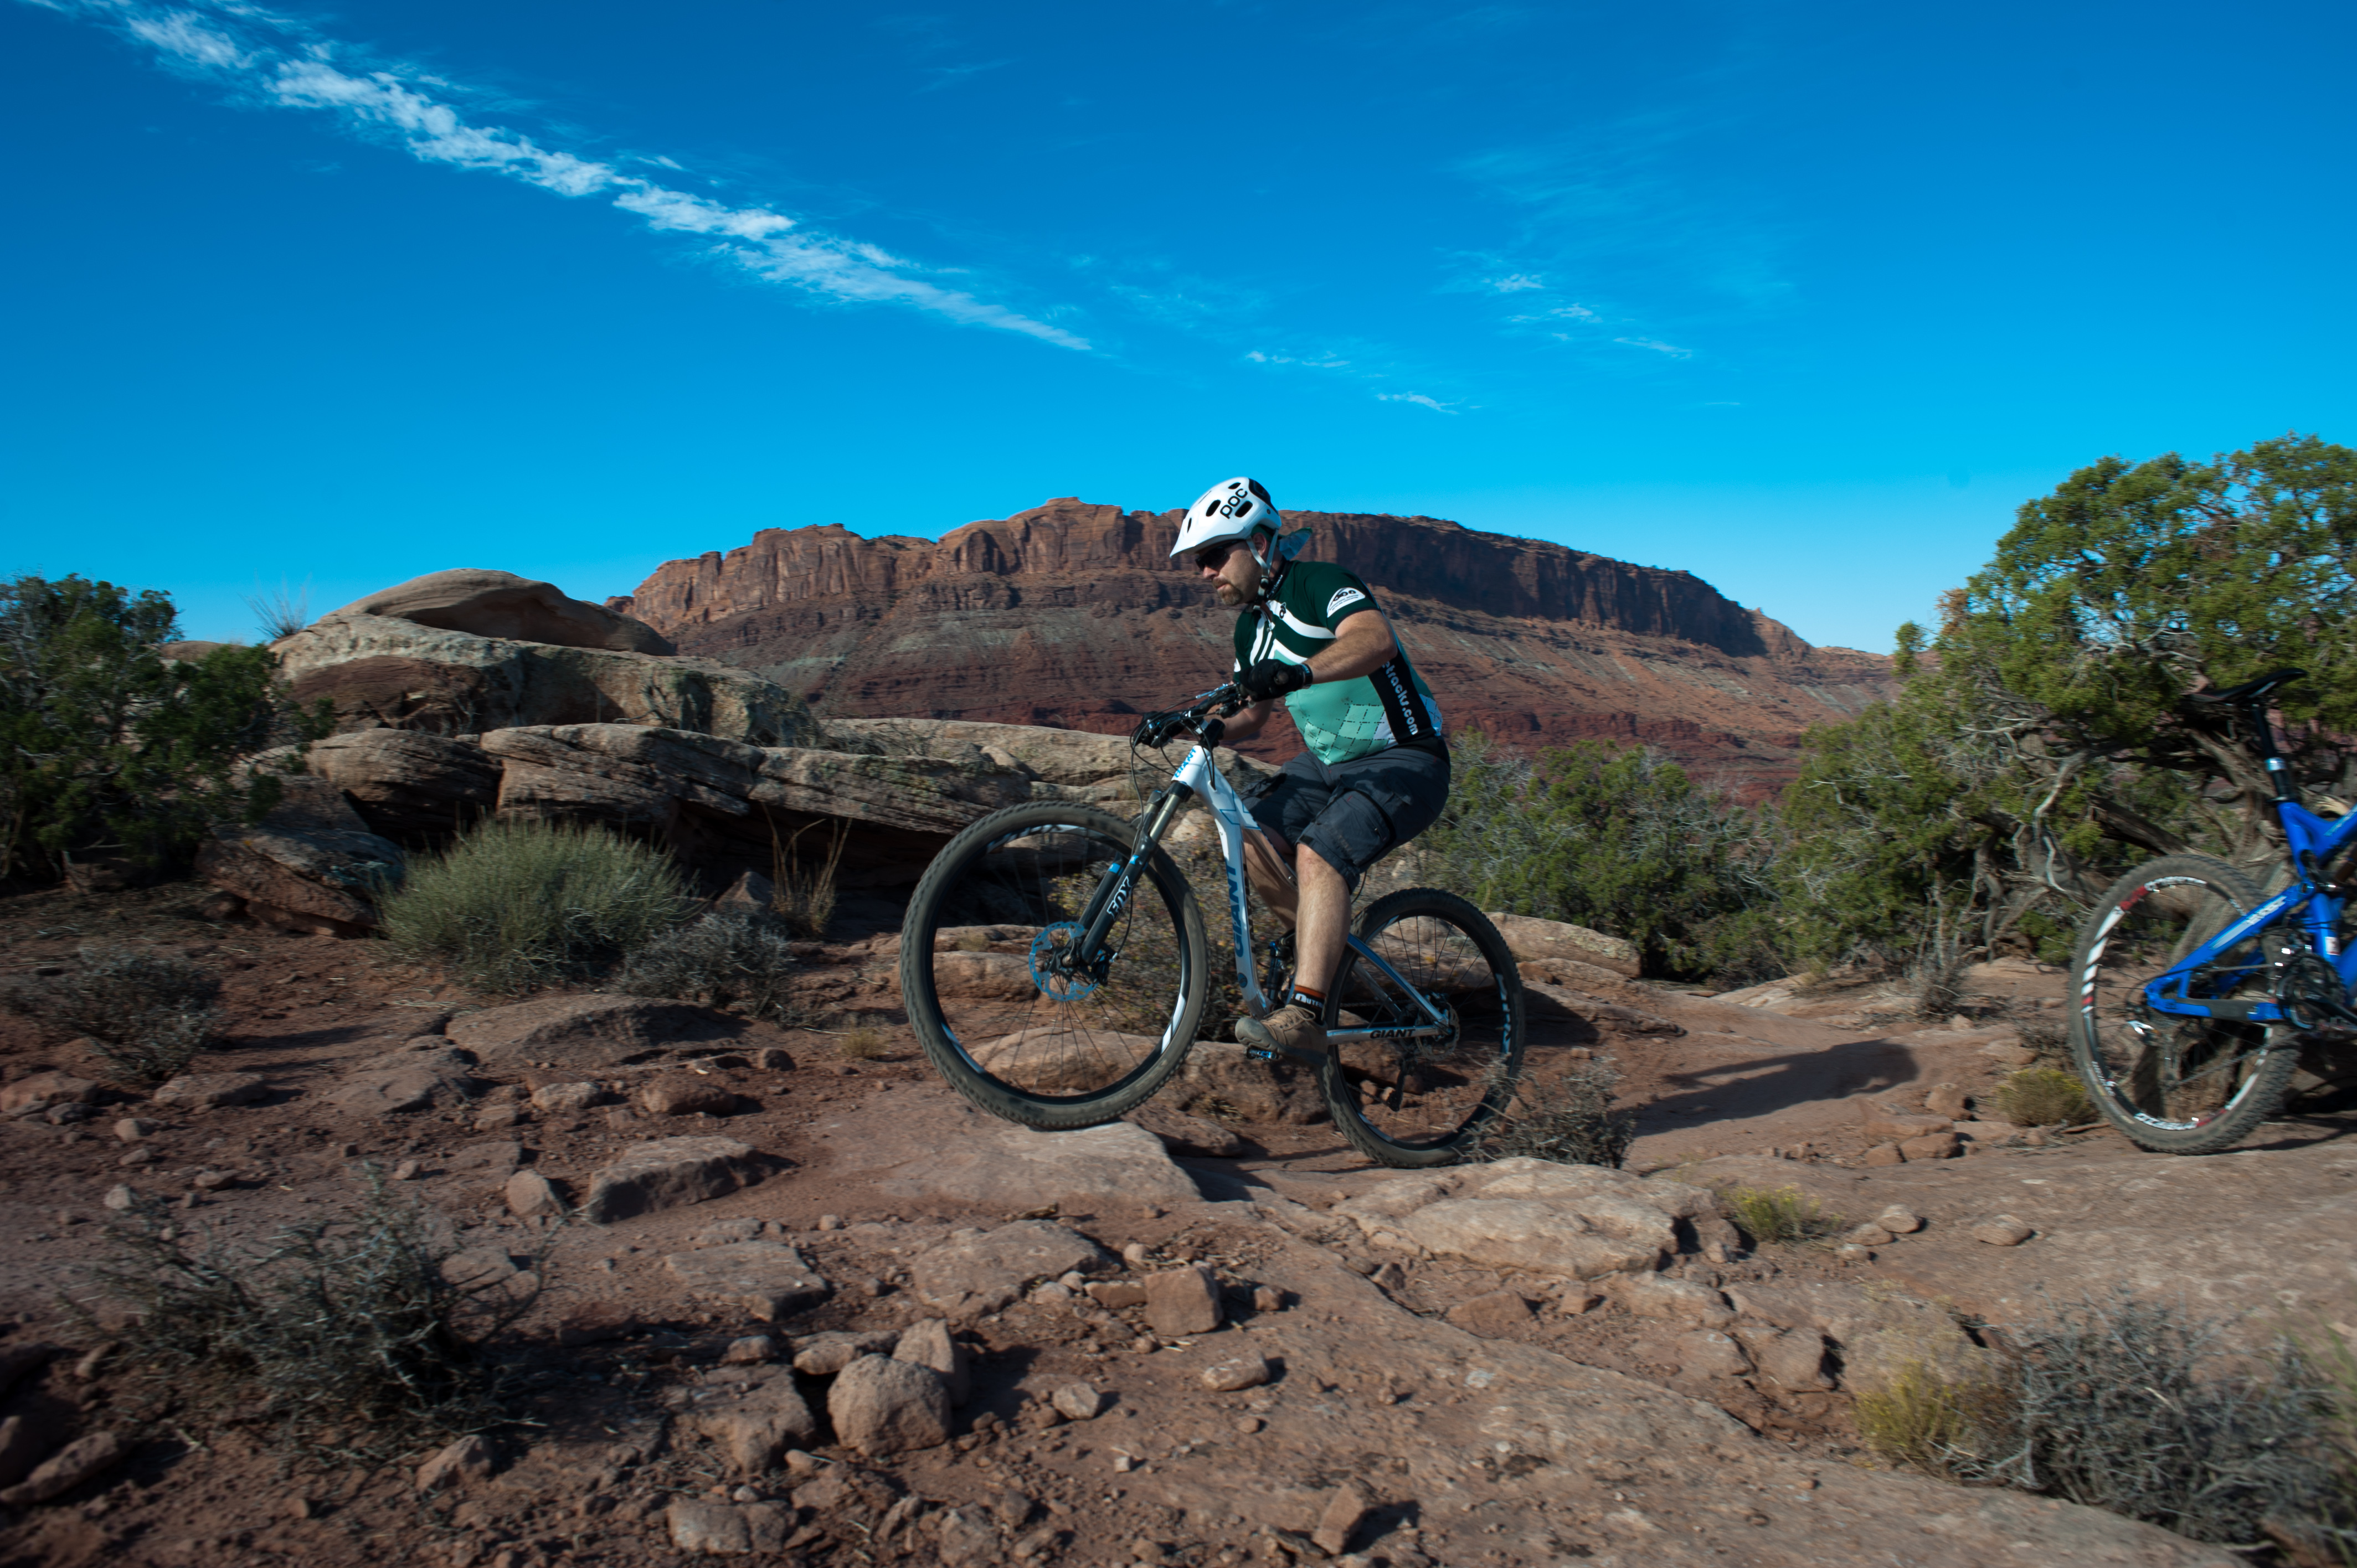 Bike Cable Lock >> Giant Trance X 29er - Outerbike Review - Singletracks ...